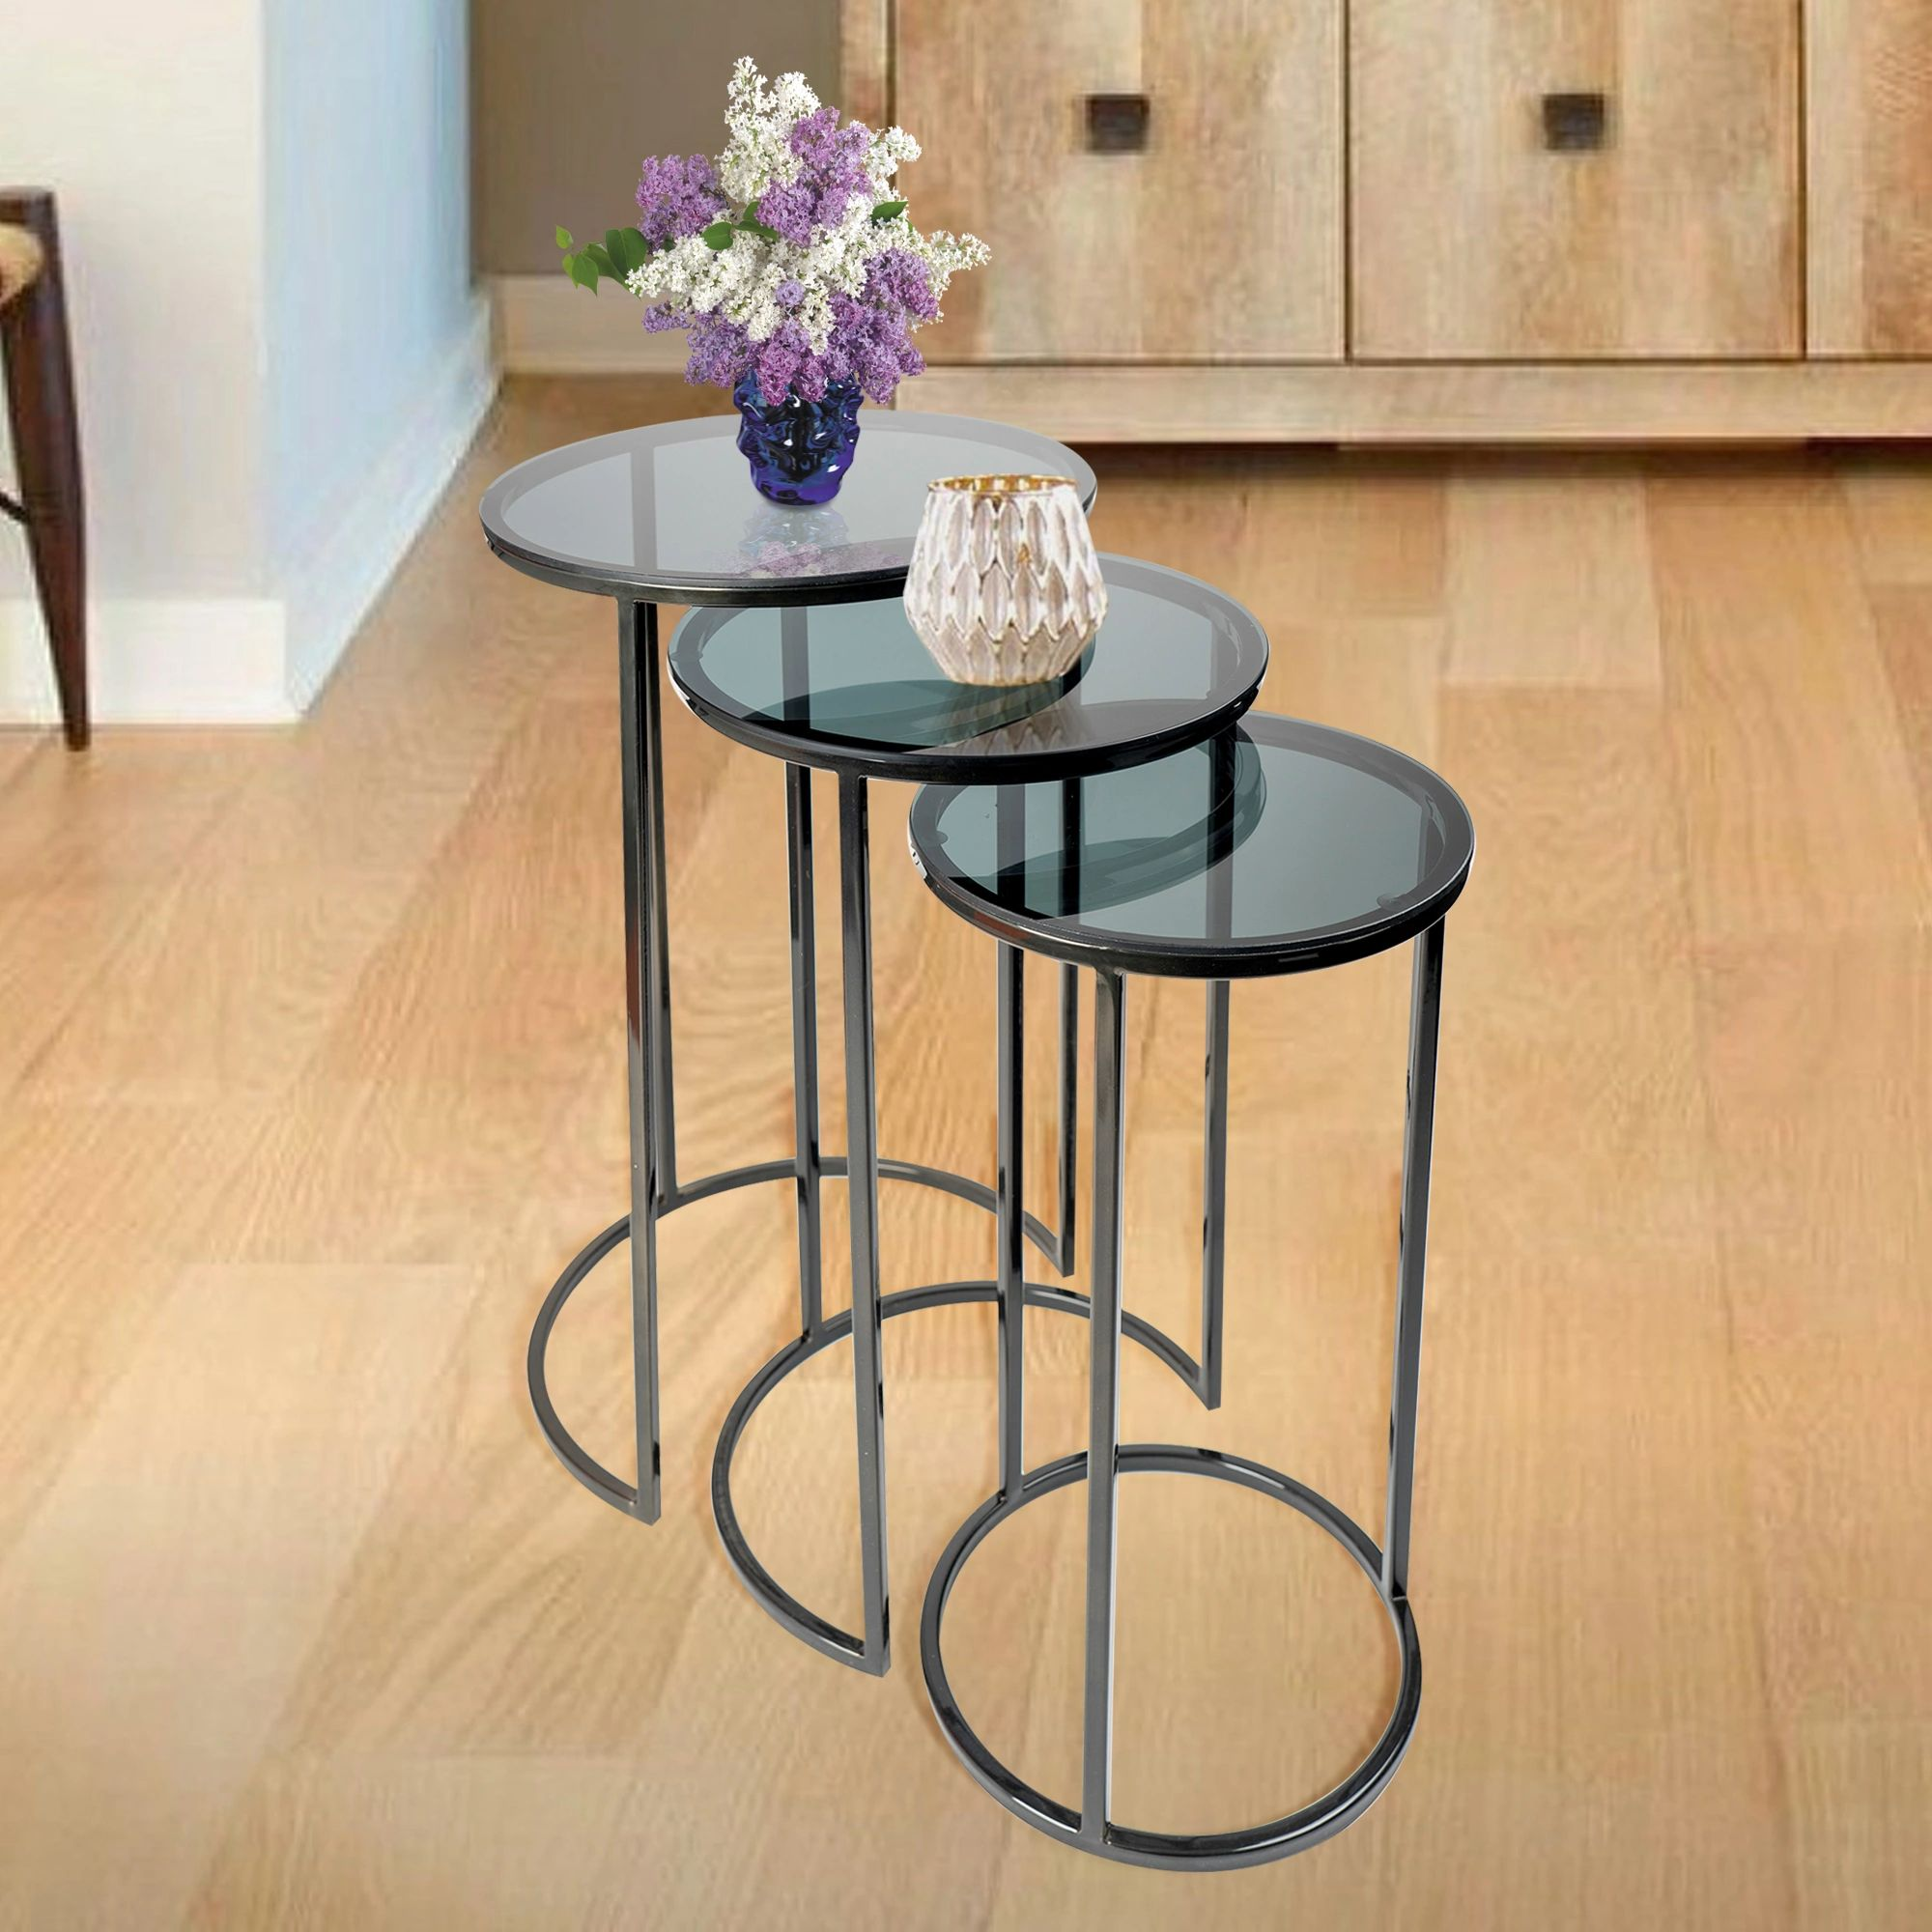 SU-155 - Side Table- s/steel Black nickle with black glass